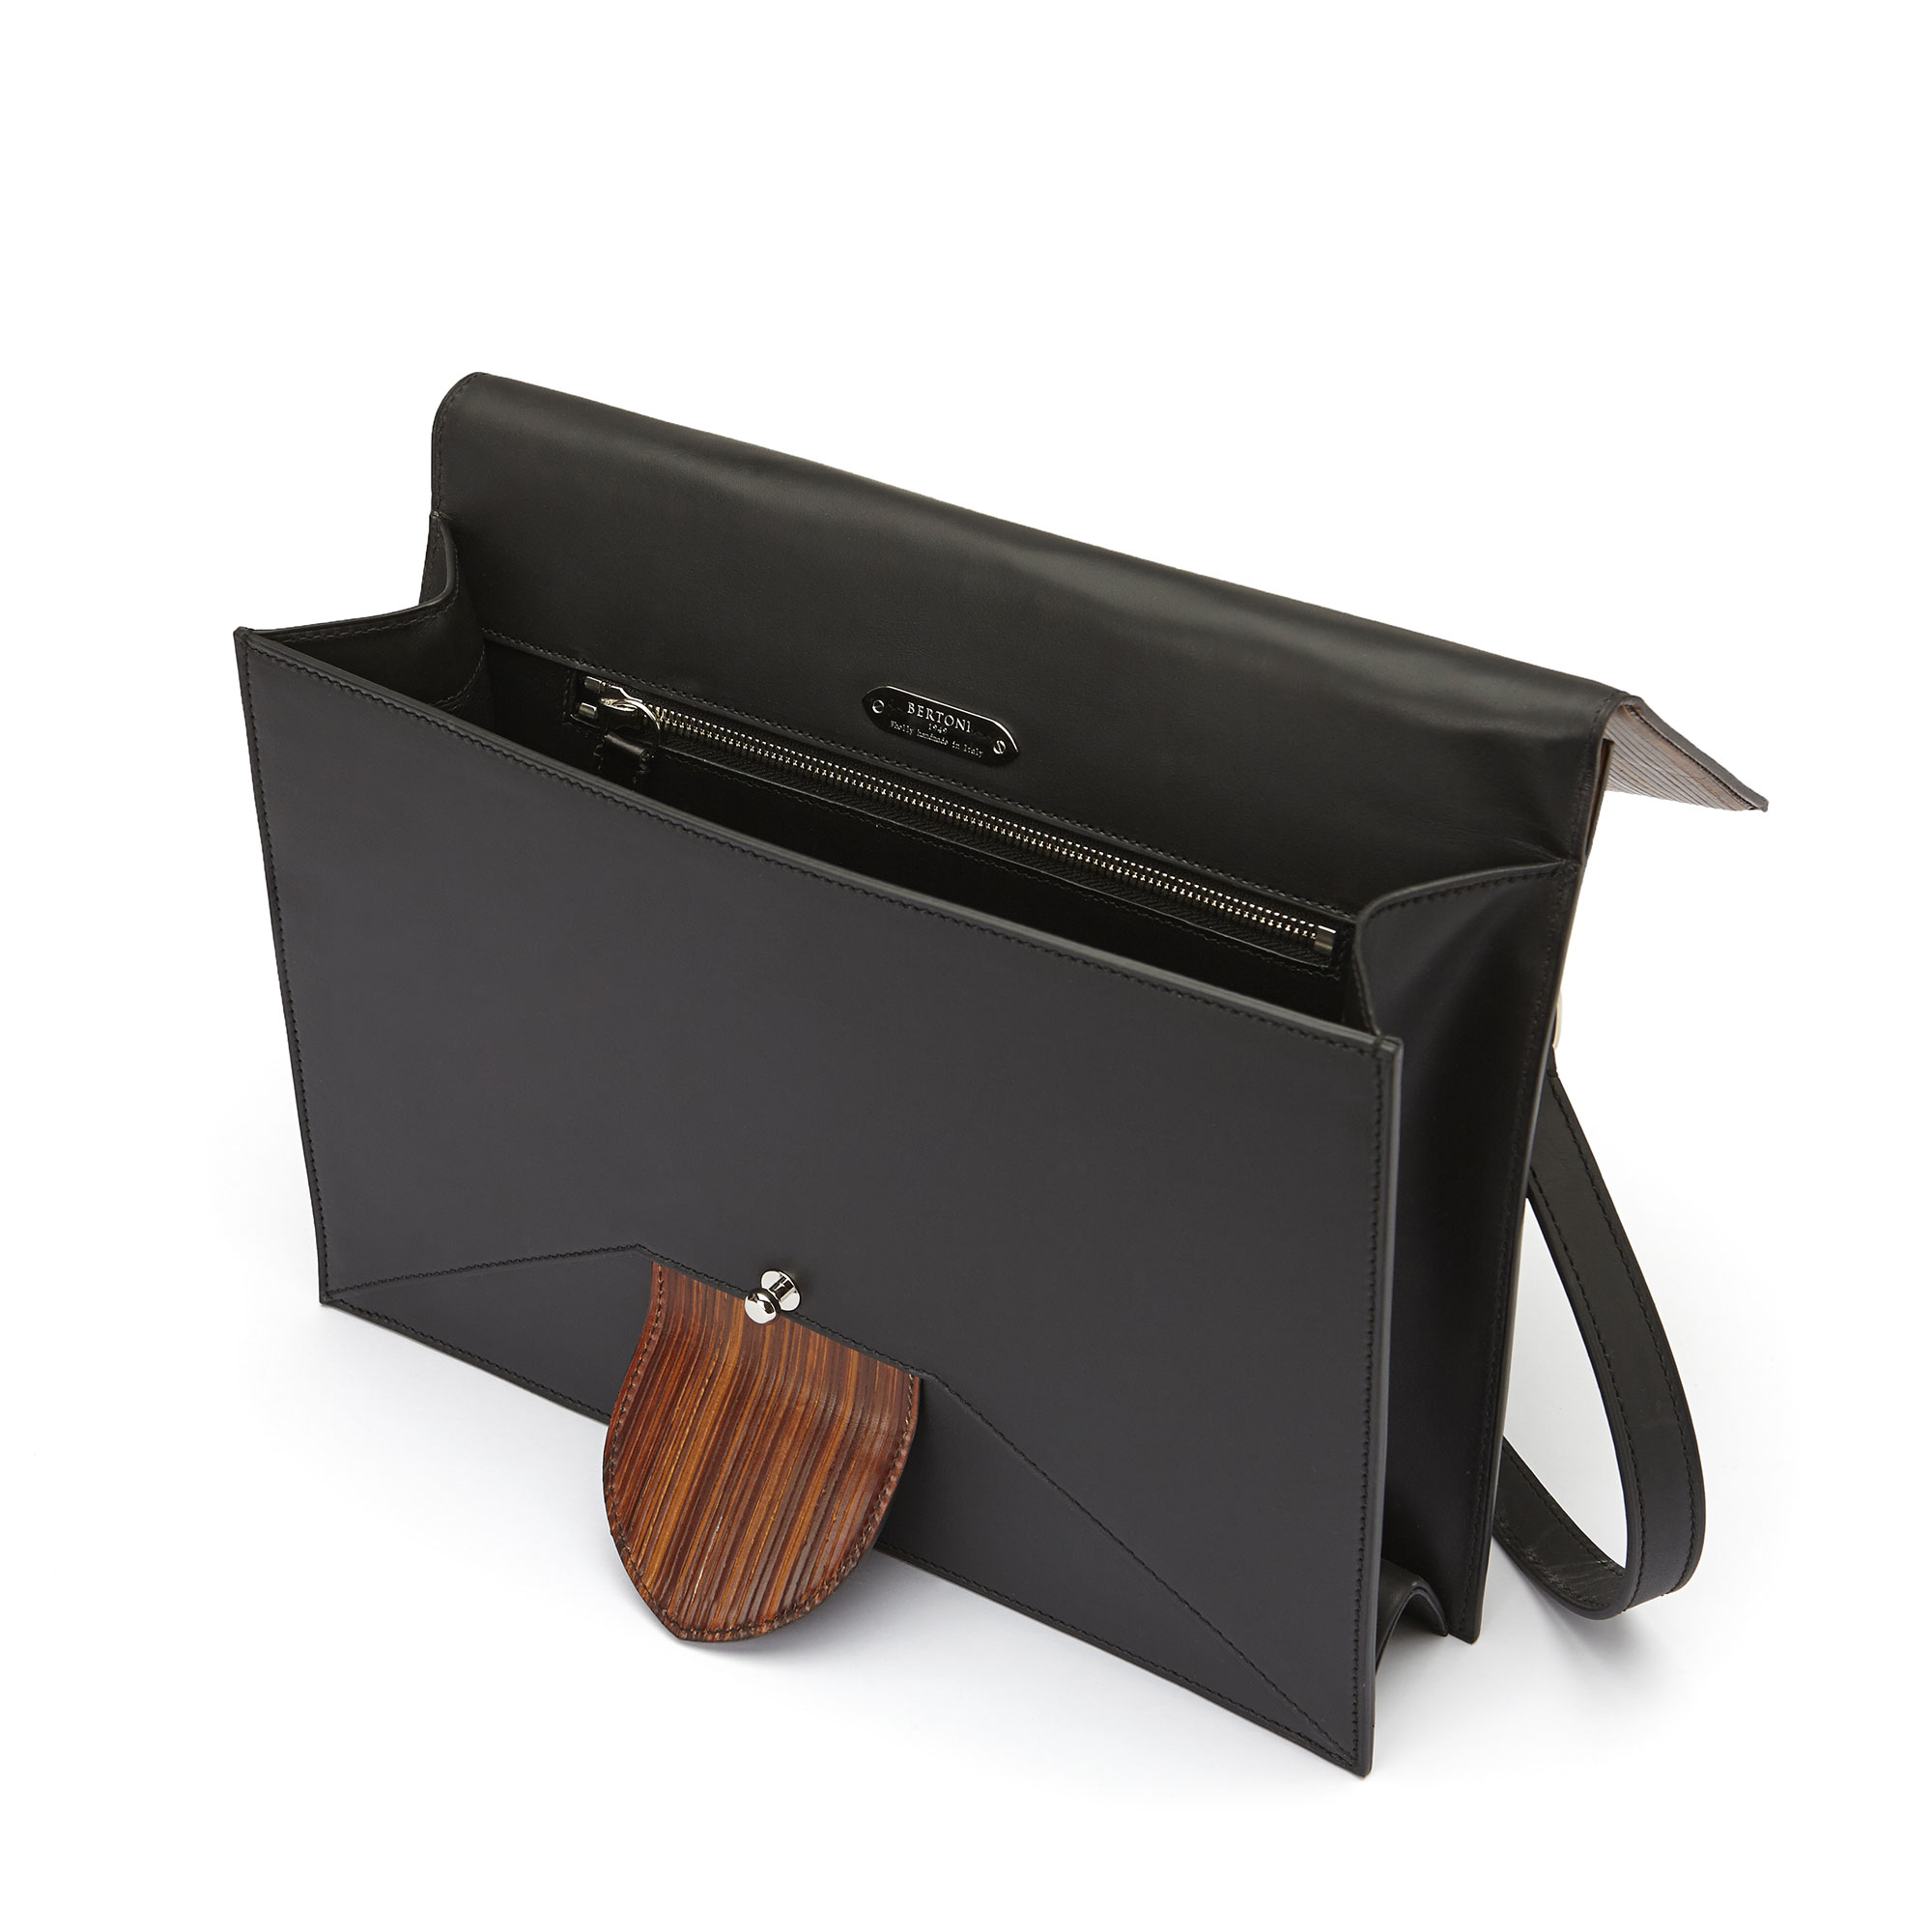 The black and brown wood leather, french calf Dafne bag by Bertoni 1949 04